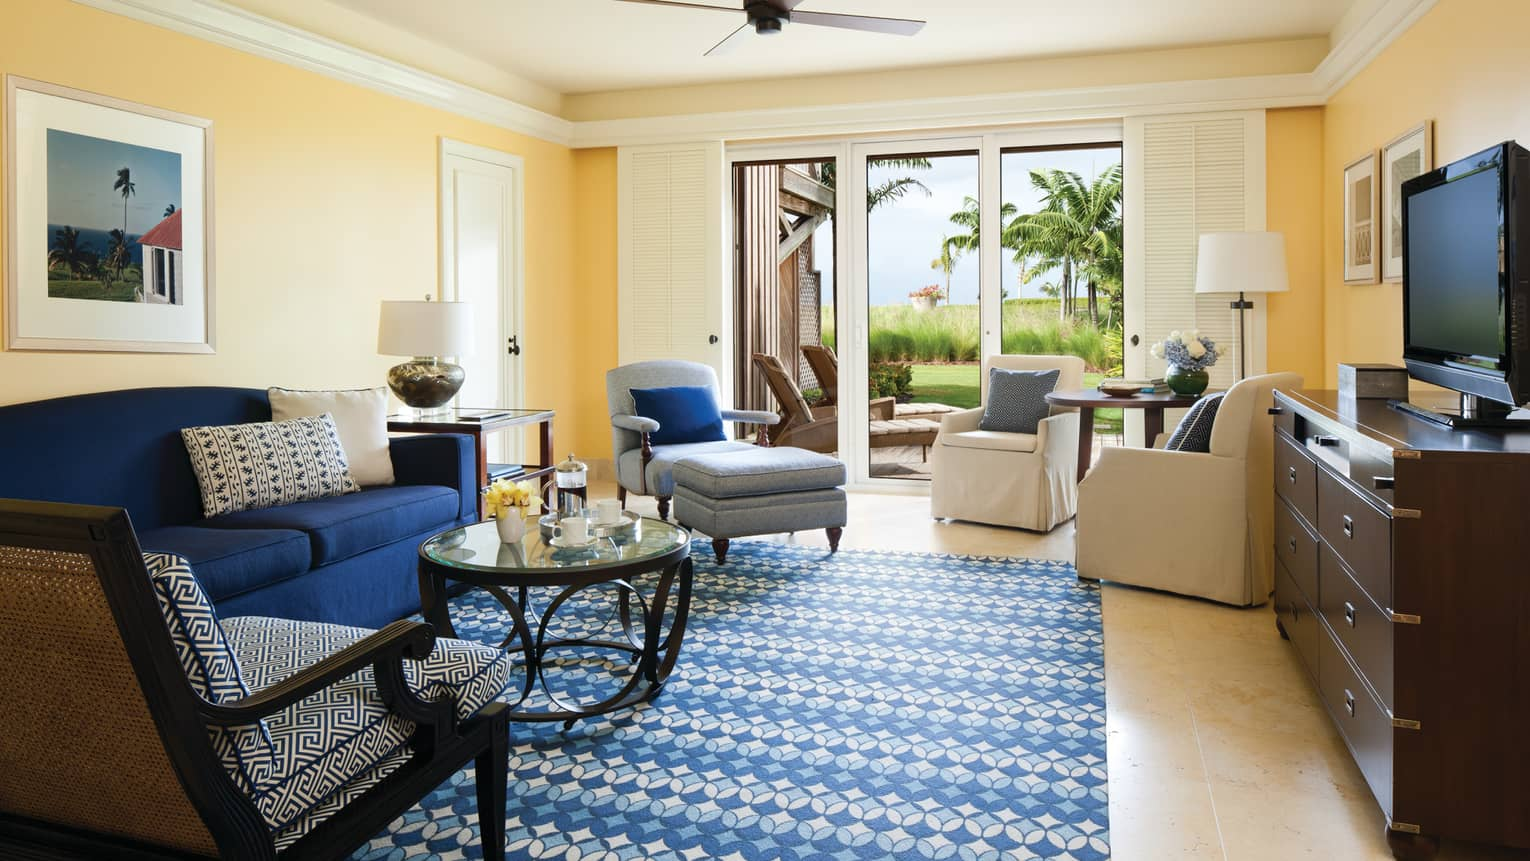 Ocean Suite blue sofa, patterned carpet, armchairs by glass balcony doors